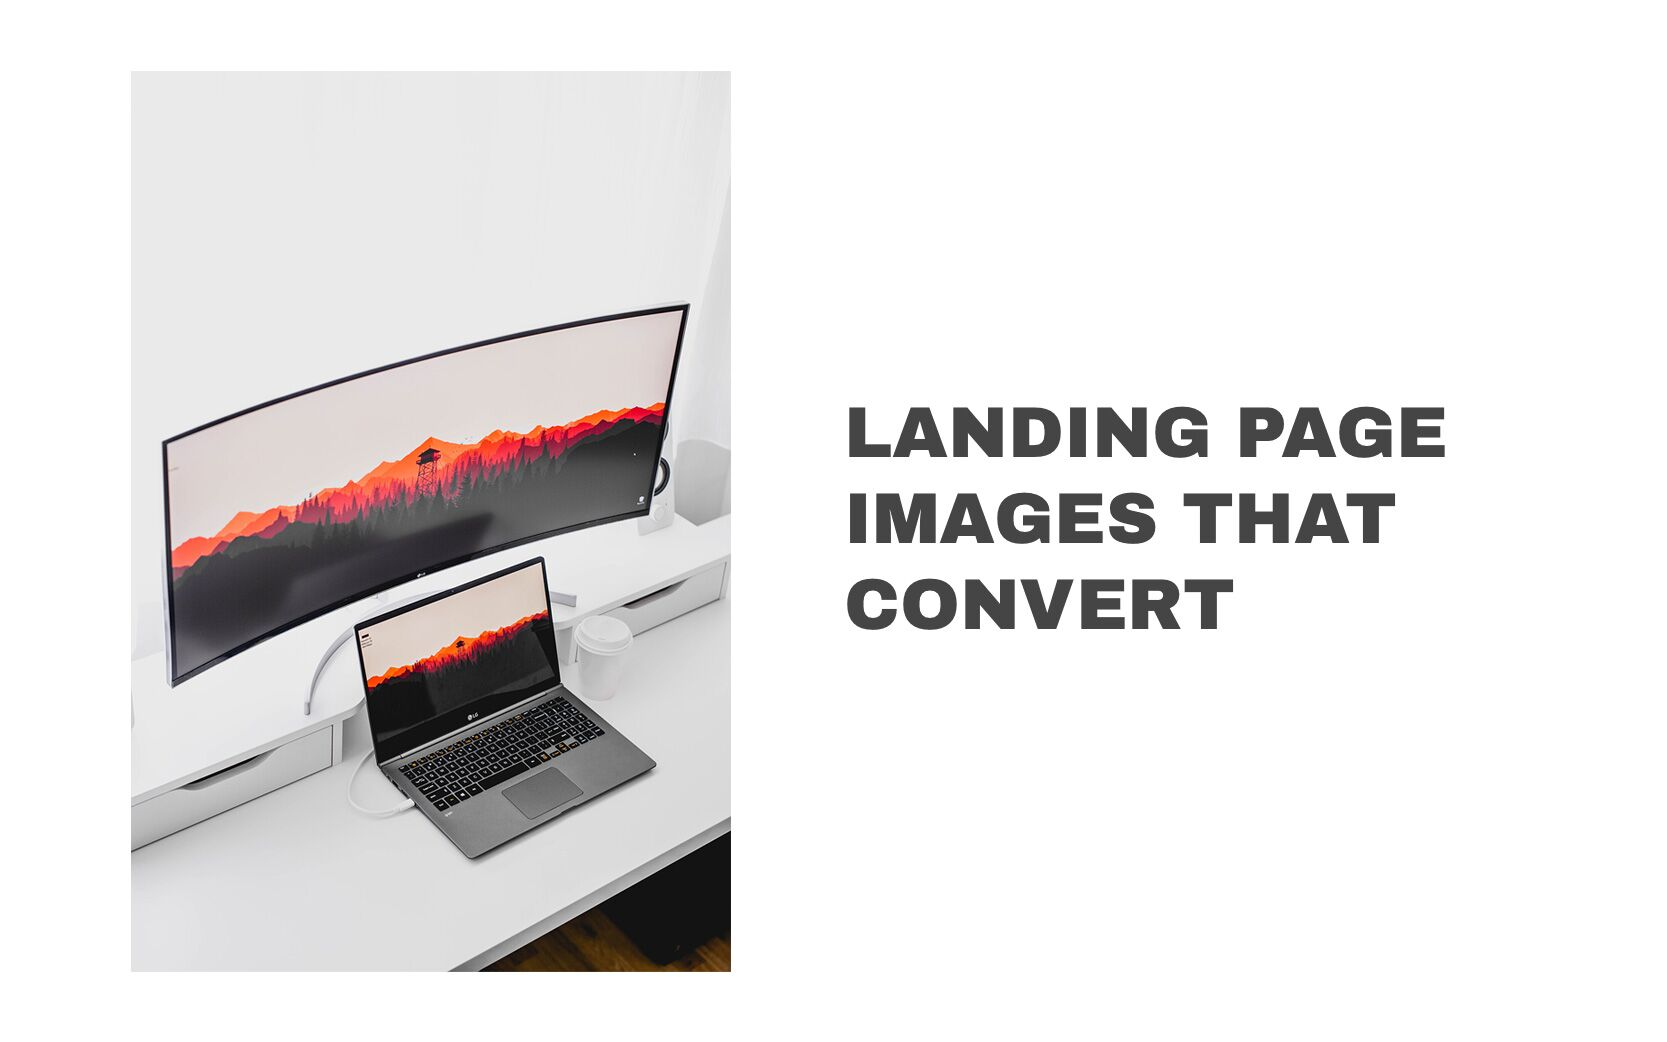 Landing page images that convert